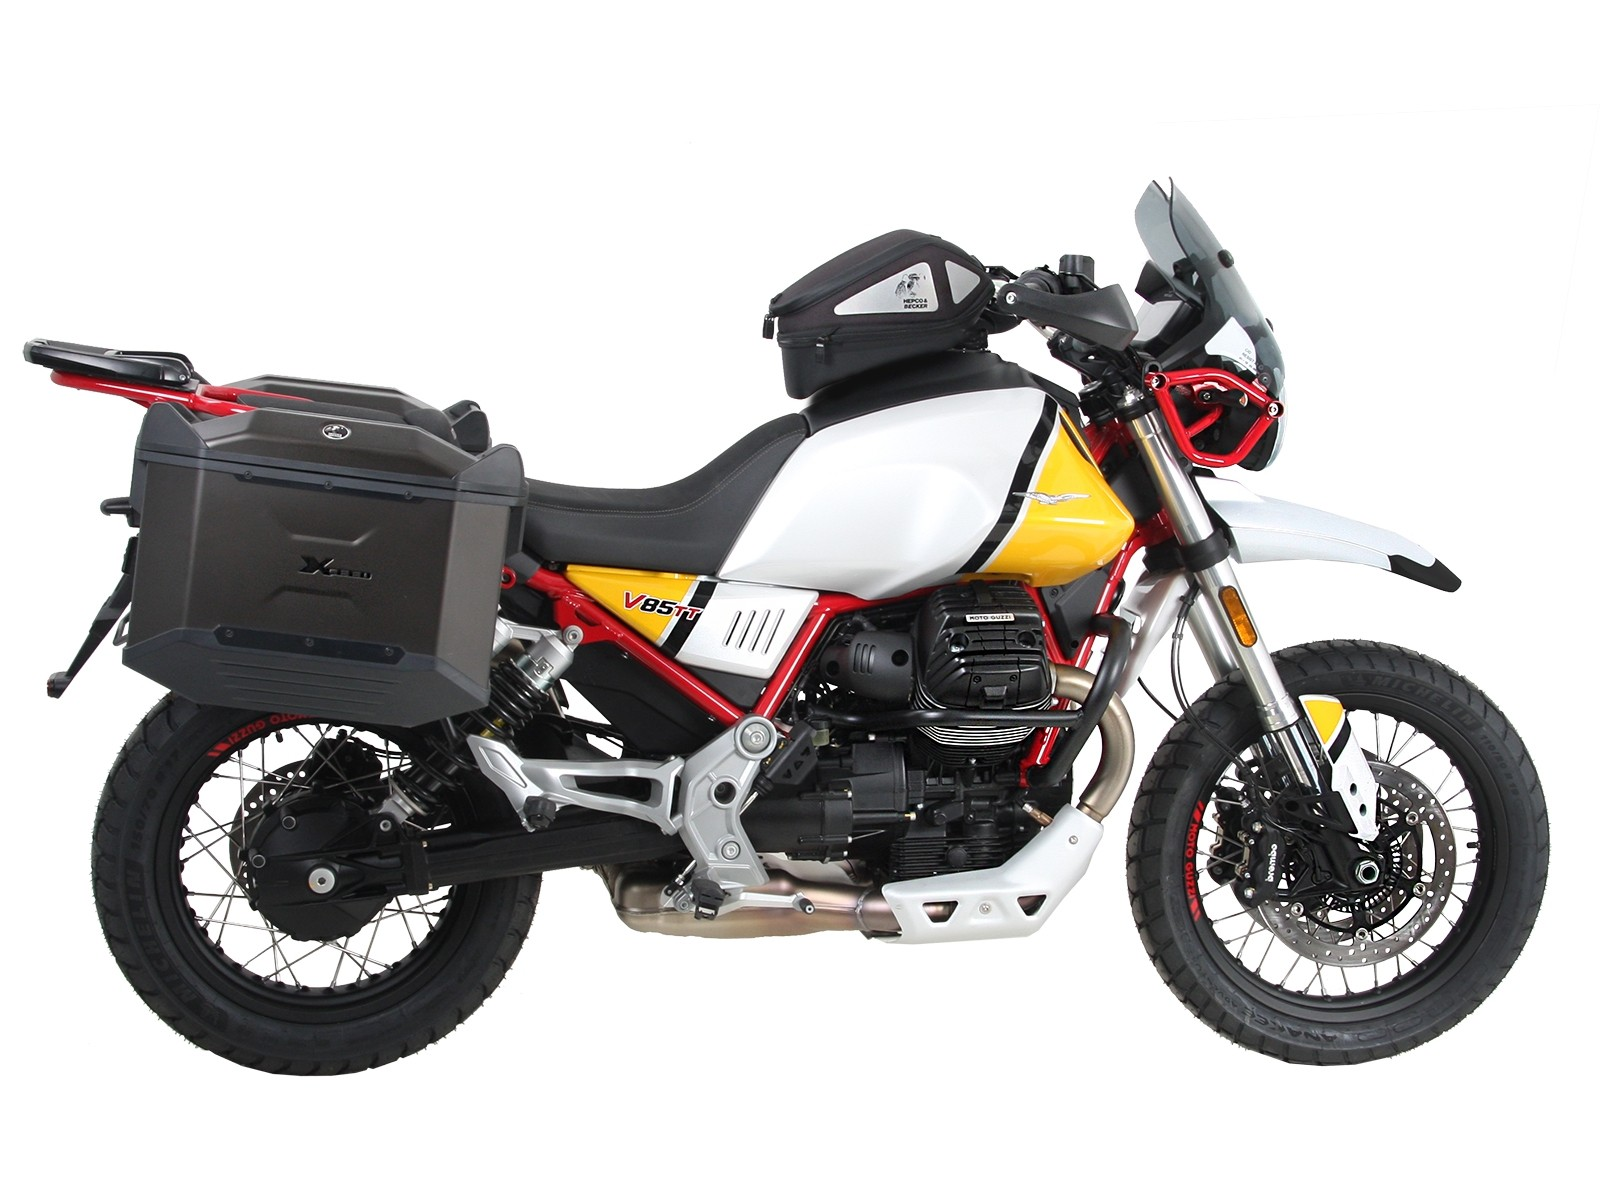 Moto Guzzi V85 TT fitted with Hepco&Becker accessories by motorcycle adventure products